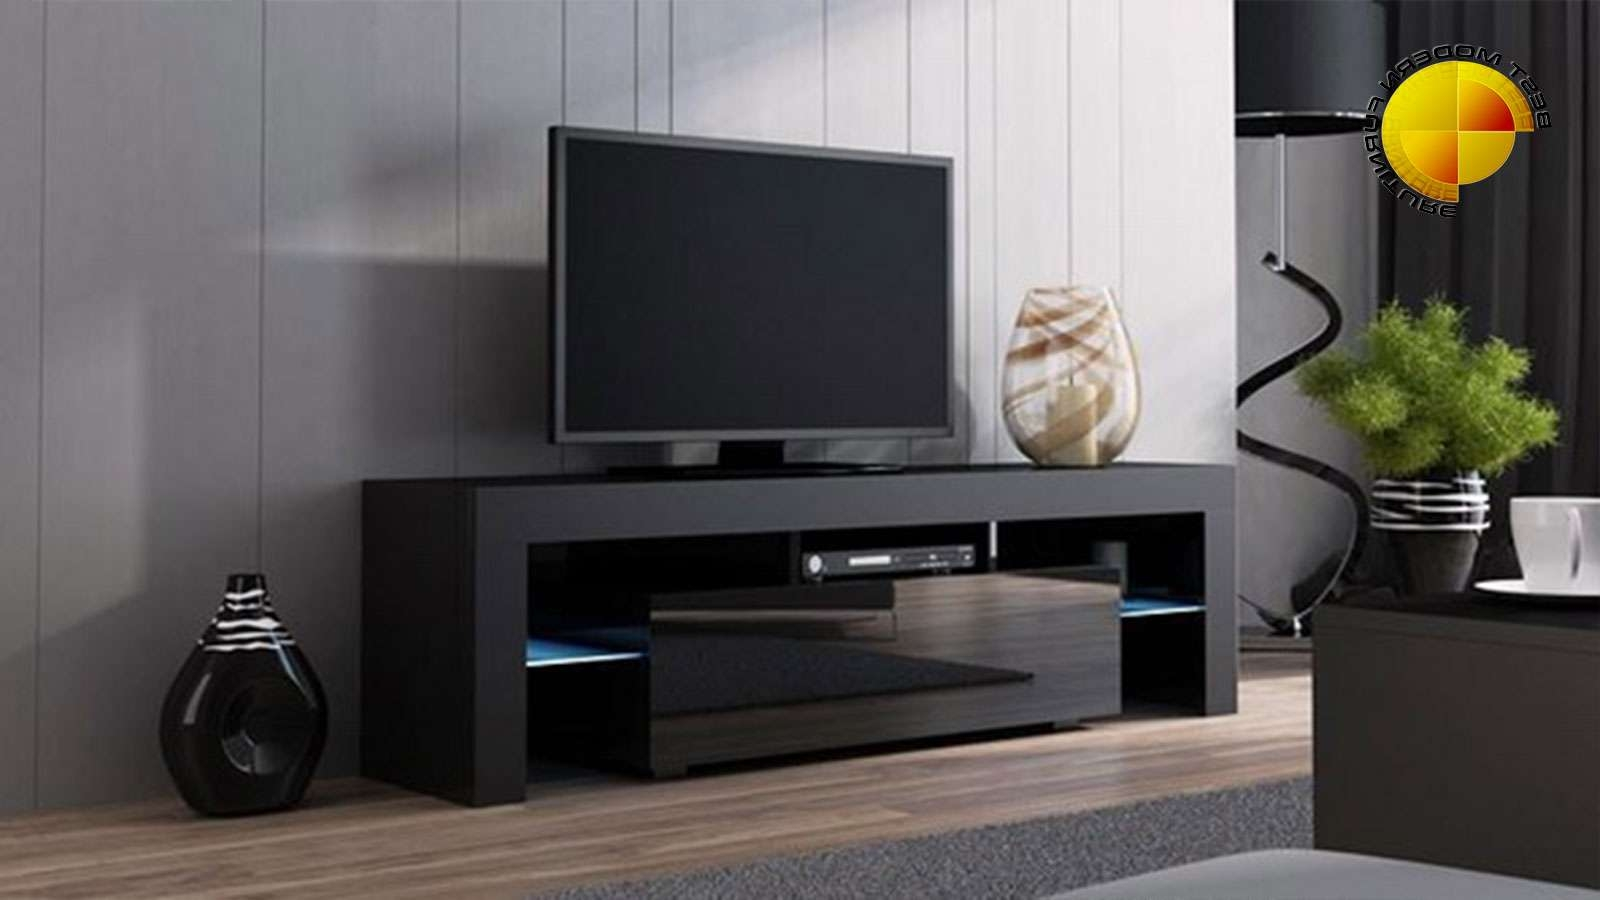 Modern Tv Stand 160Cm High Gloss Cabinet Rgb Led Lights Black Unit Inside Modern Tv Cabinets (View 19 of 20)